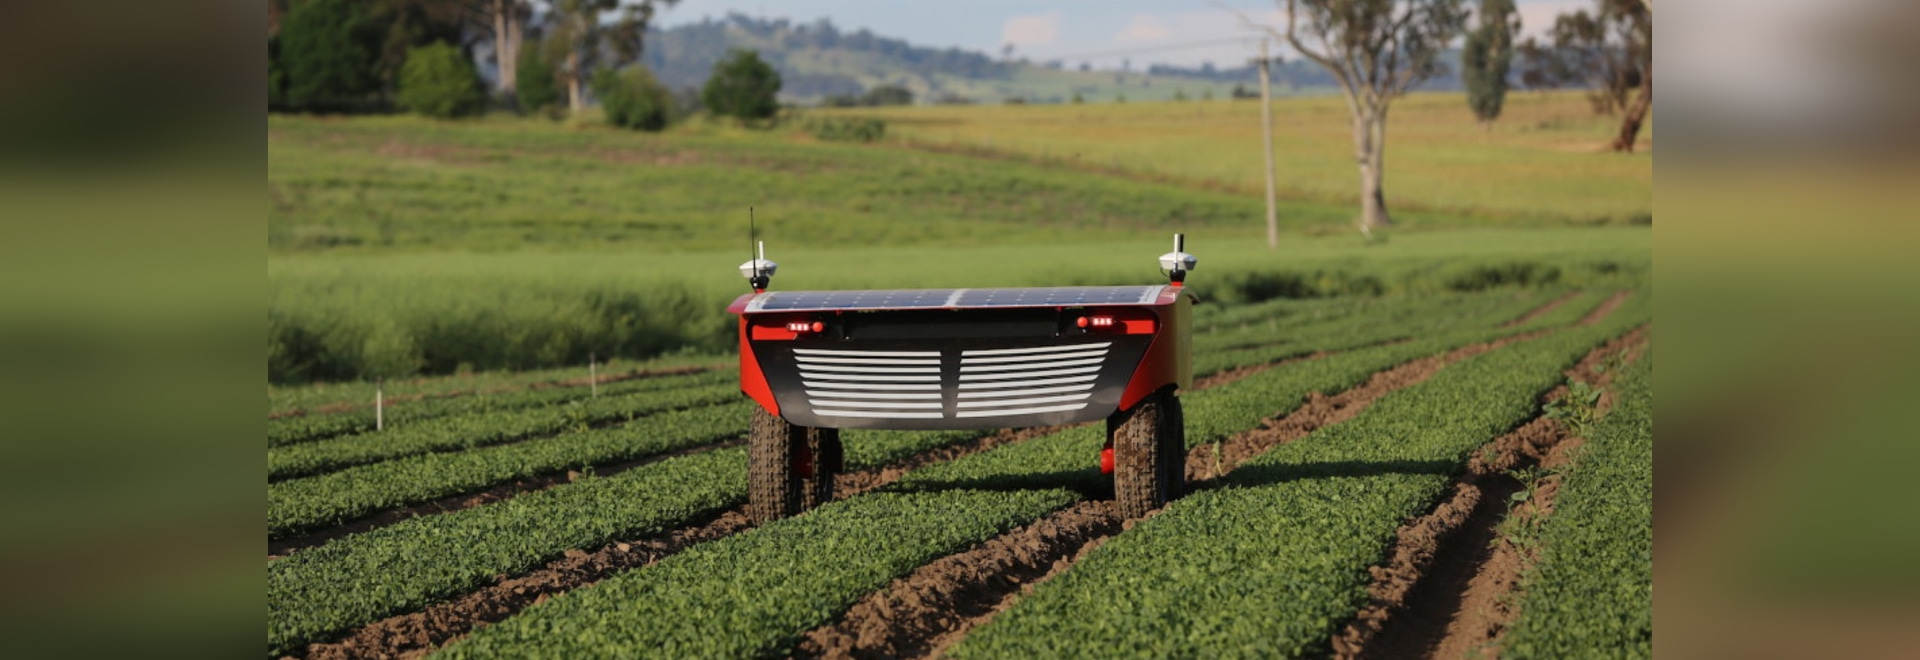 How regenerative agriculture and robotics can benefit each other